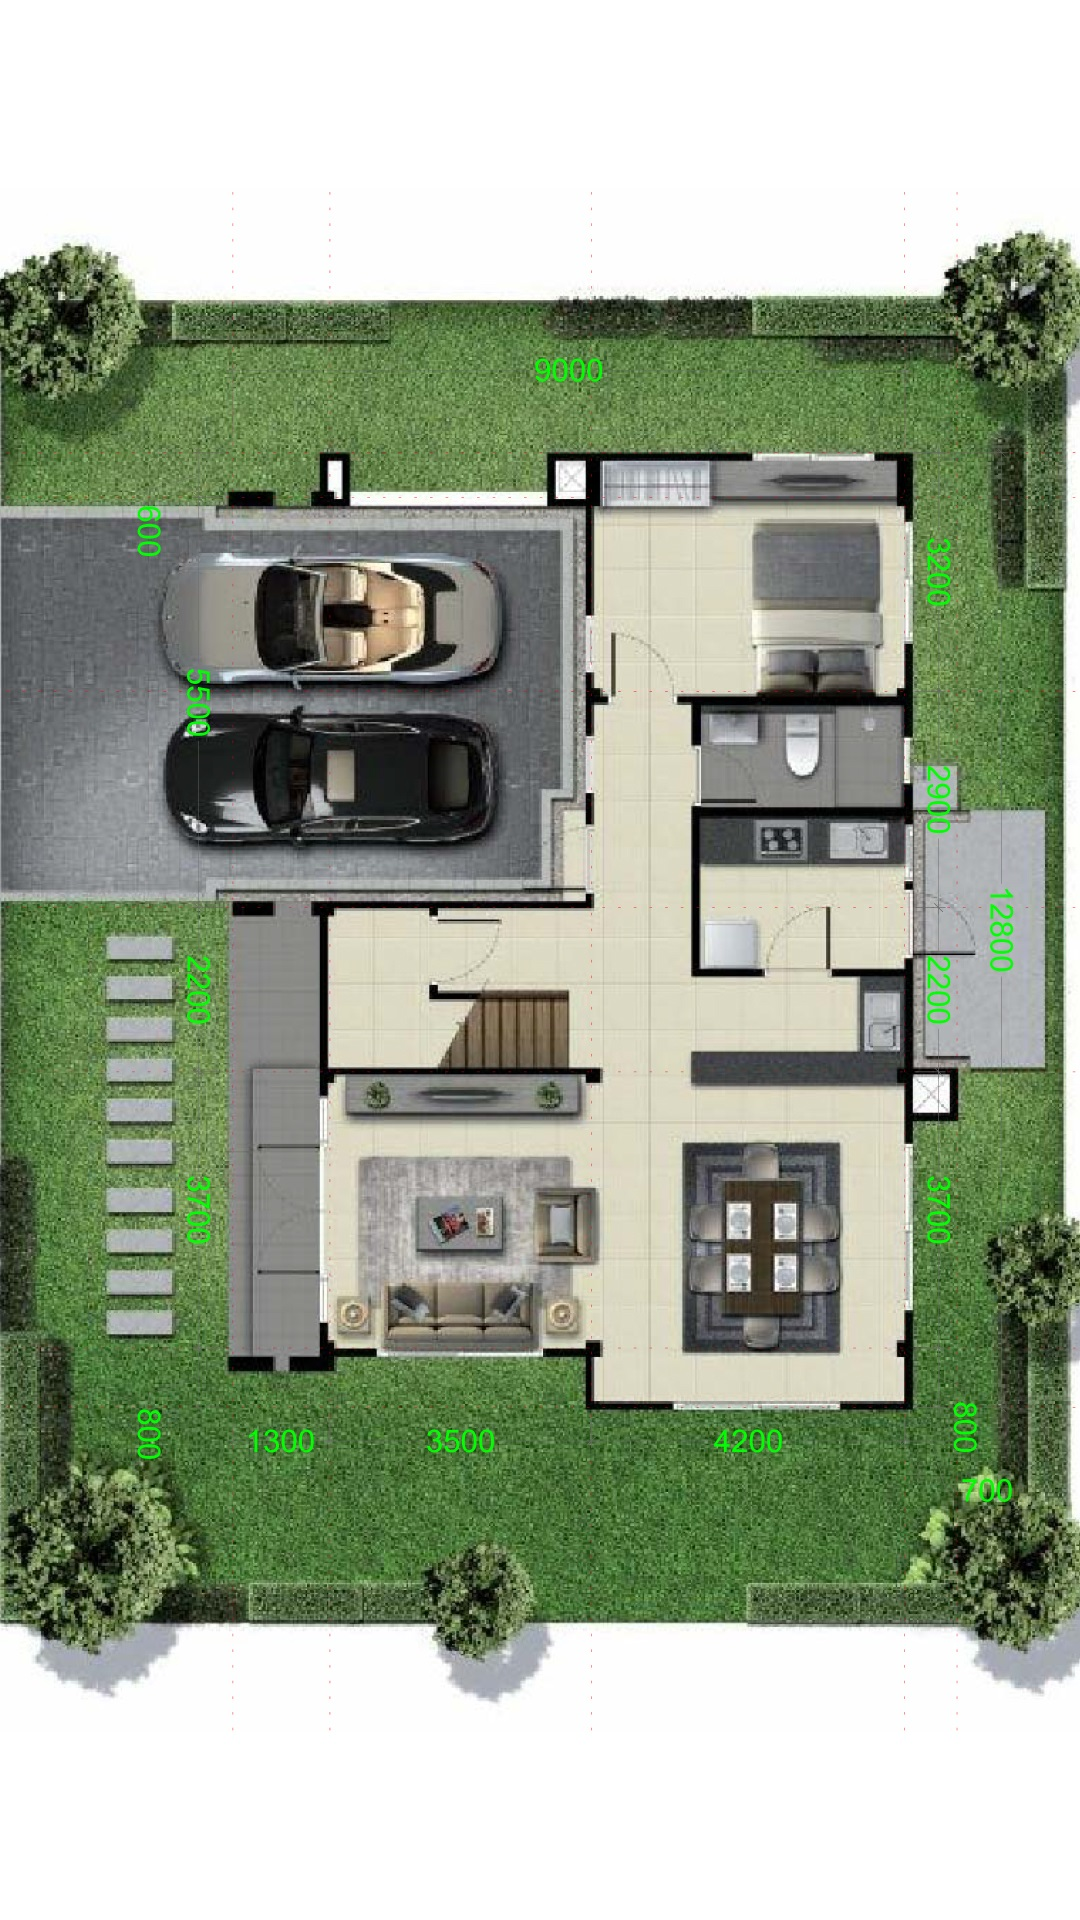 Home design plan 13x9m with 4 bedrooms - House Plans 3D